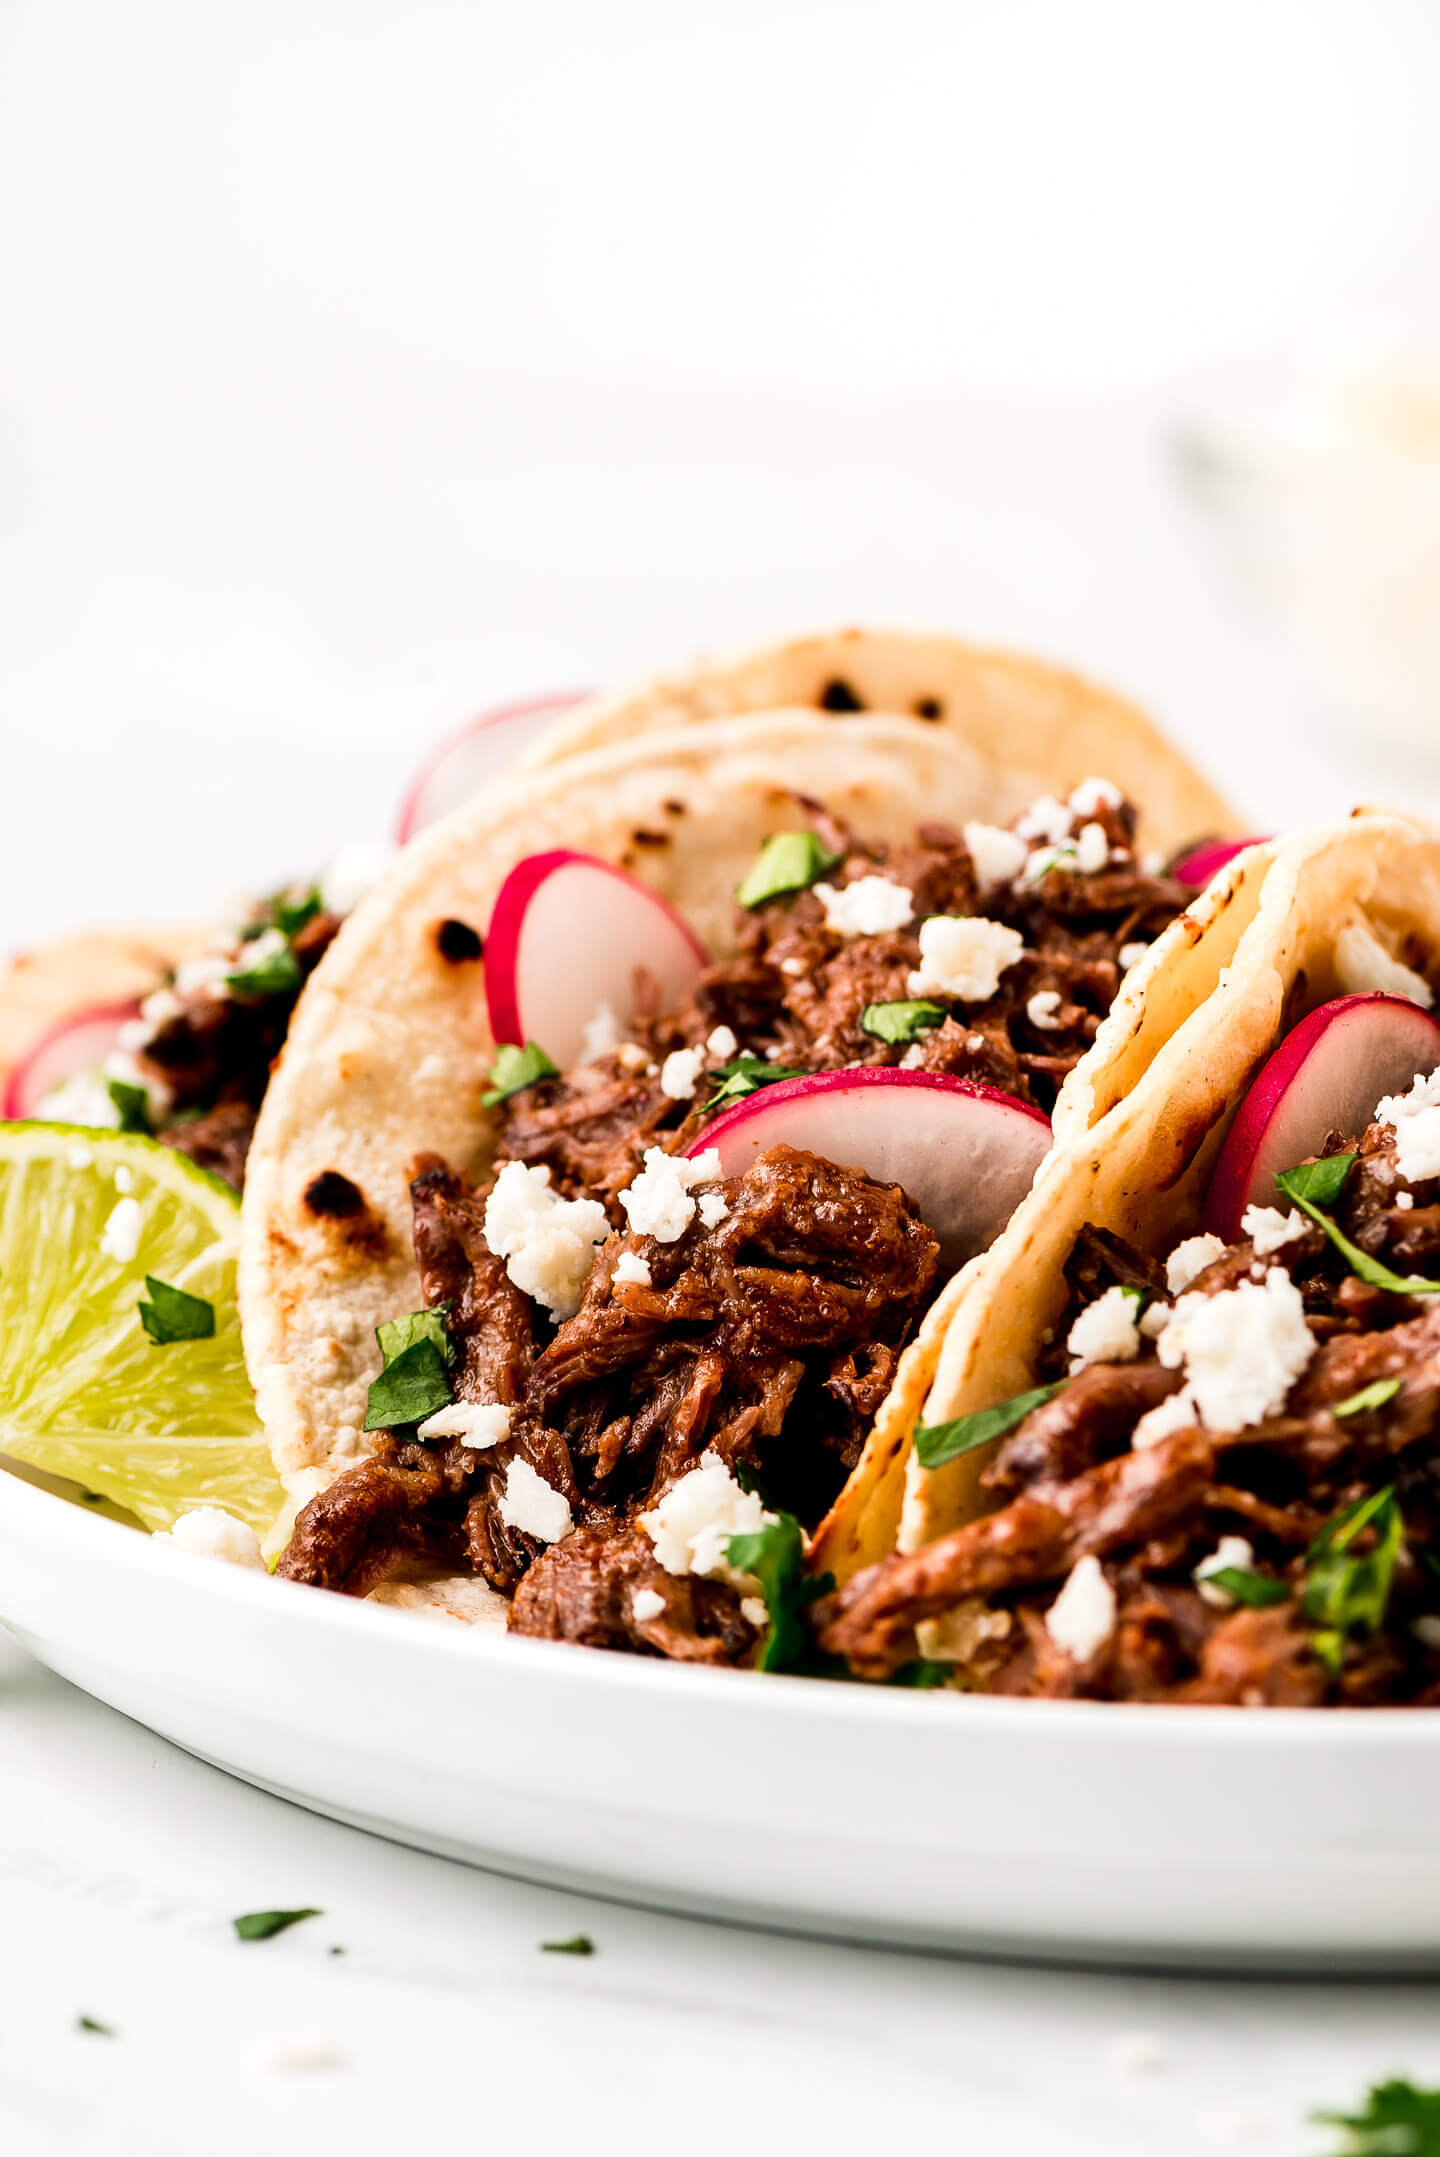 A close up shot of tacos with Beef Barbacoa meat, radishes, cilantro, and cheese.